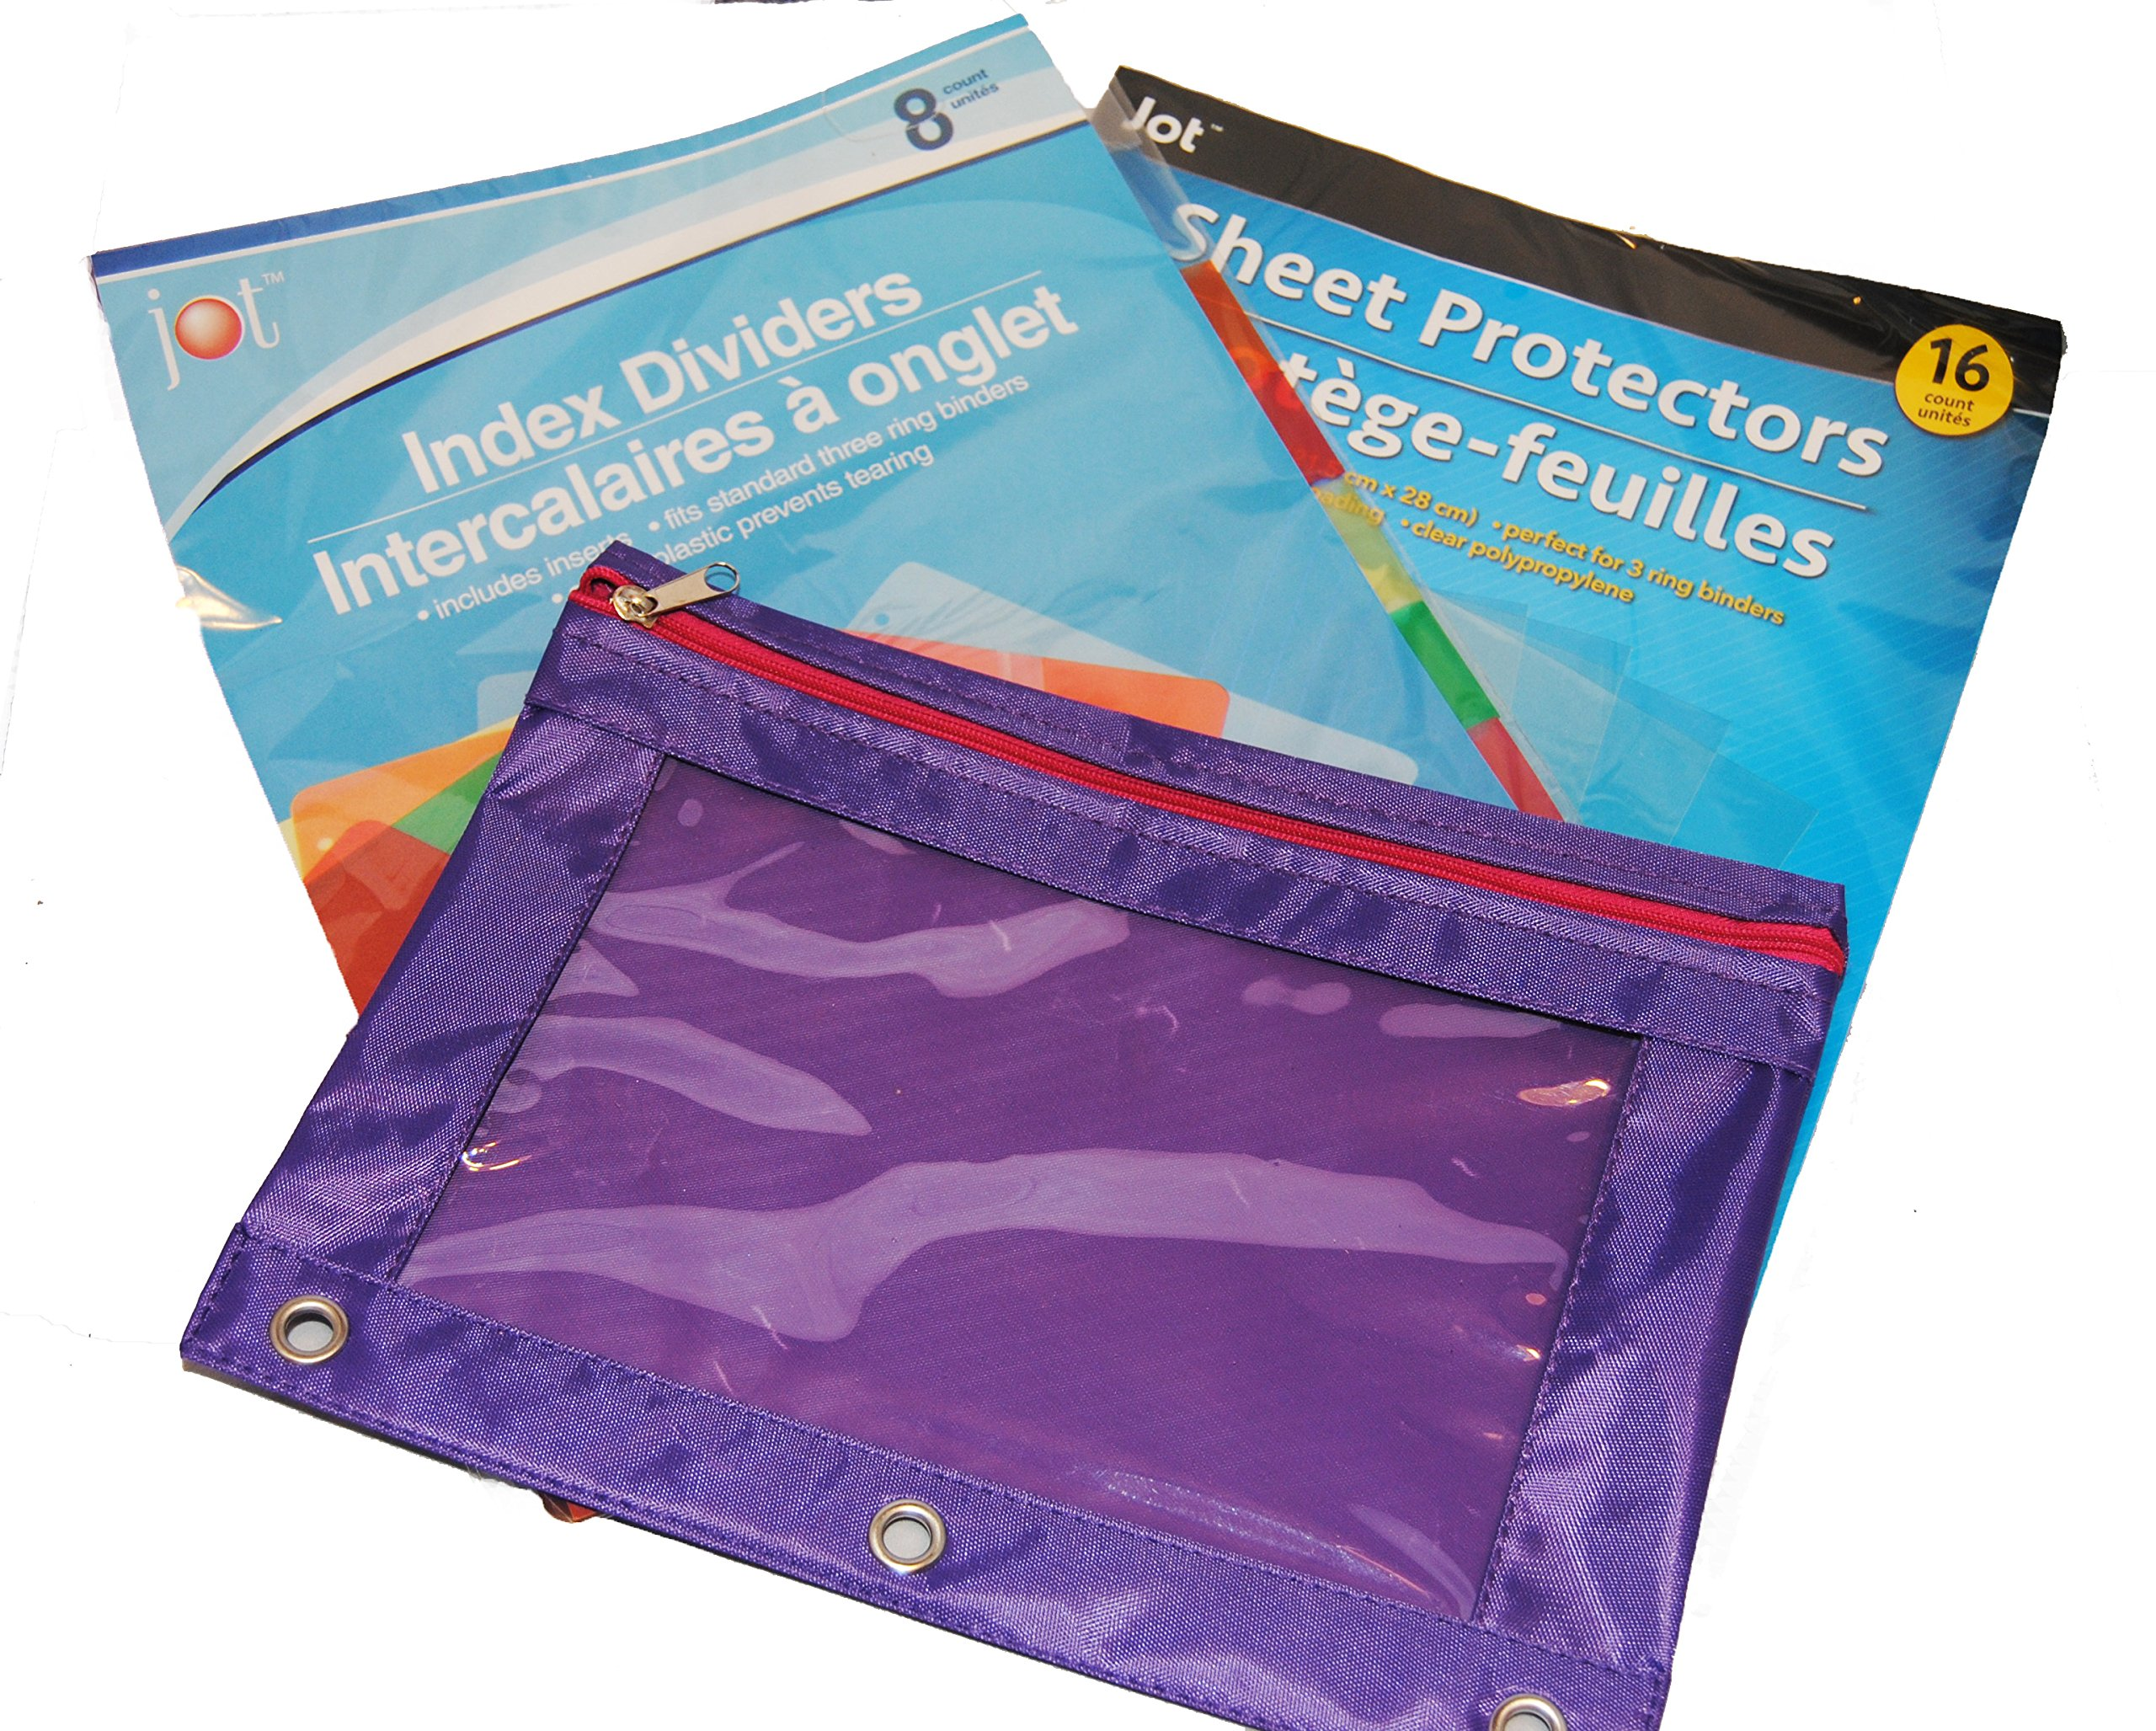 Binder Accessories Kit:1 Pencil pouch, 8 Dividers, and 16 Sheet Protectors (pink/purple)